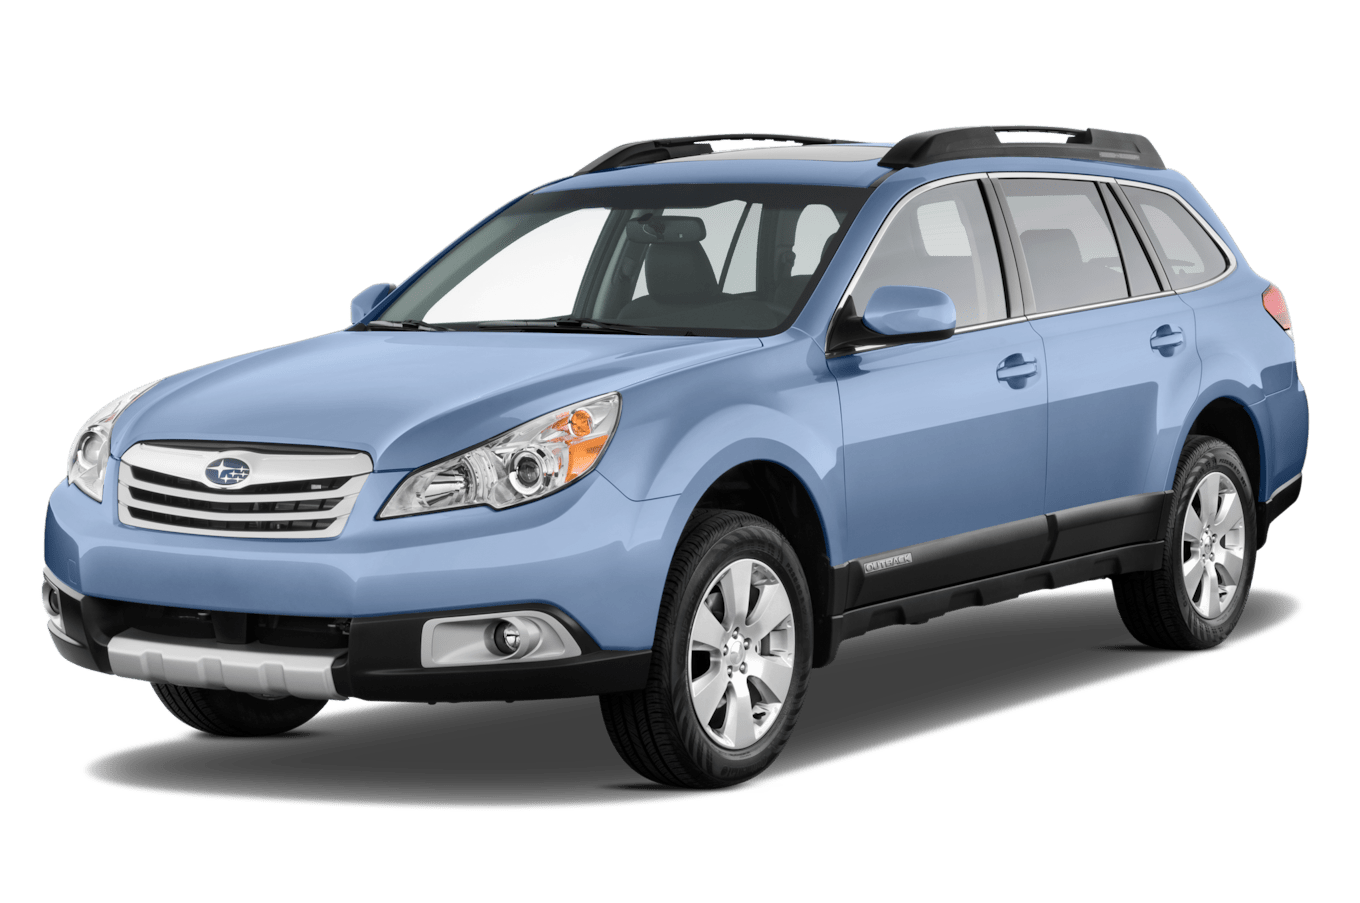 small resolution of 2011 subaru outback reviews research outback prices specs wiring harness in addition 2016 subaru outback wagon further subaru